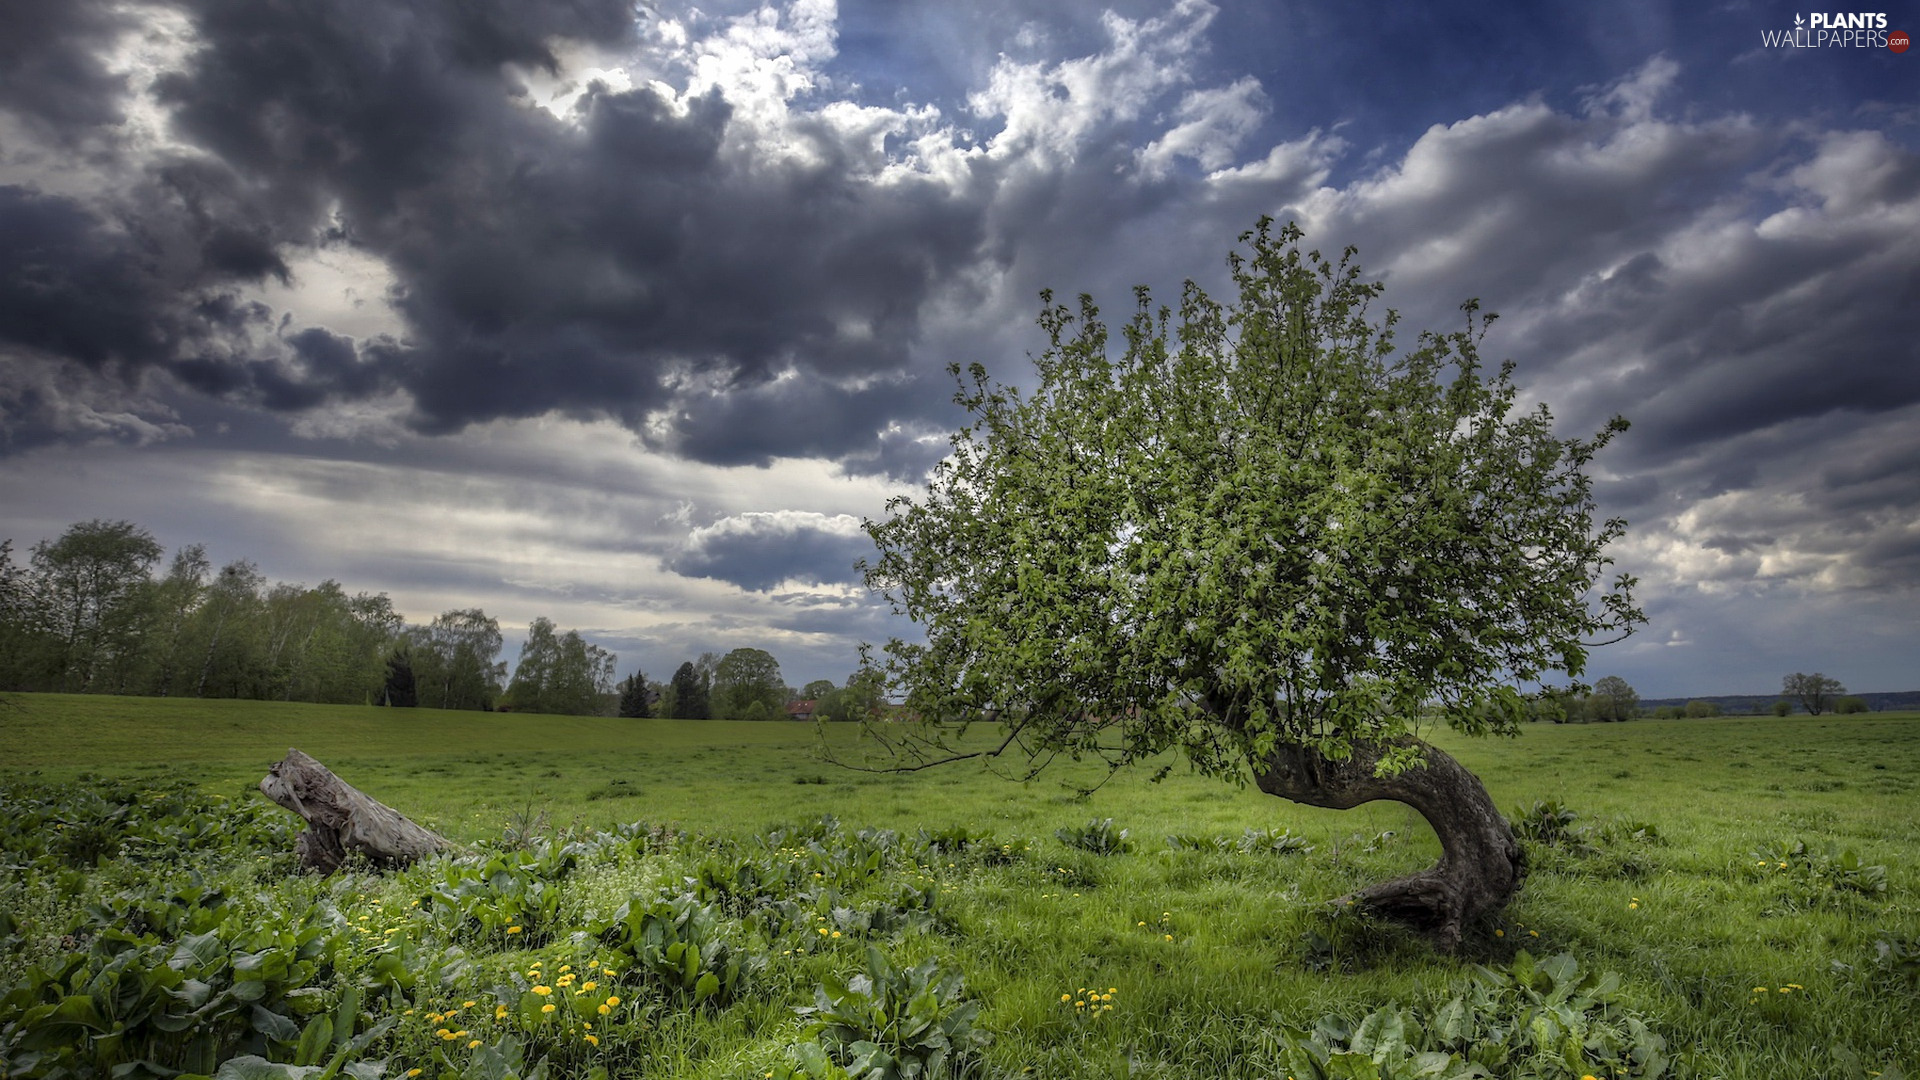 dark, Meadow, trees, clouds